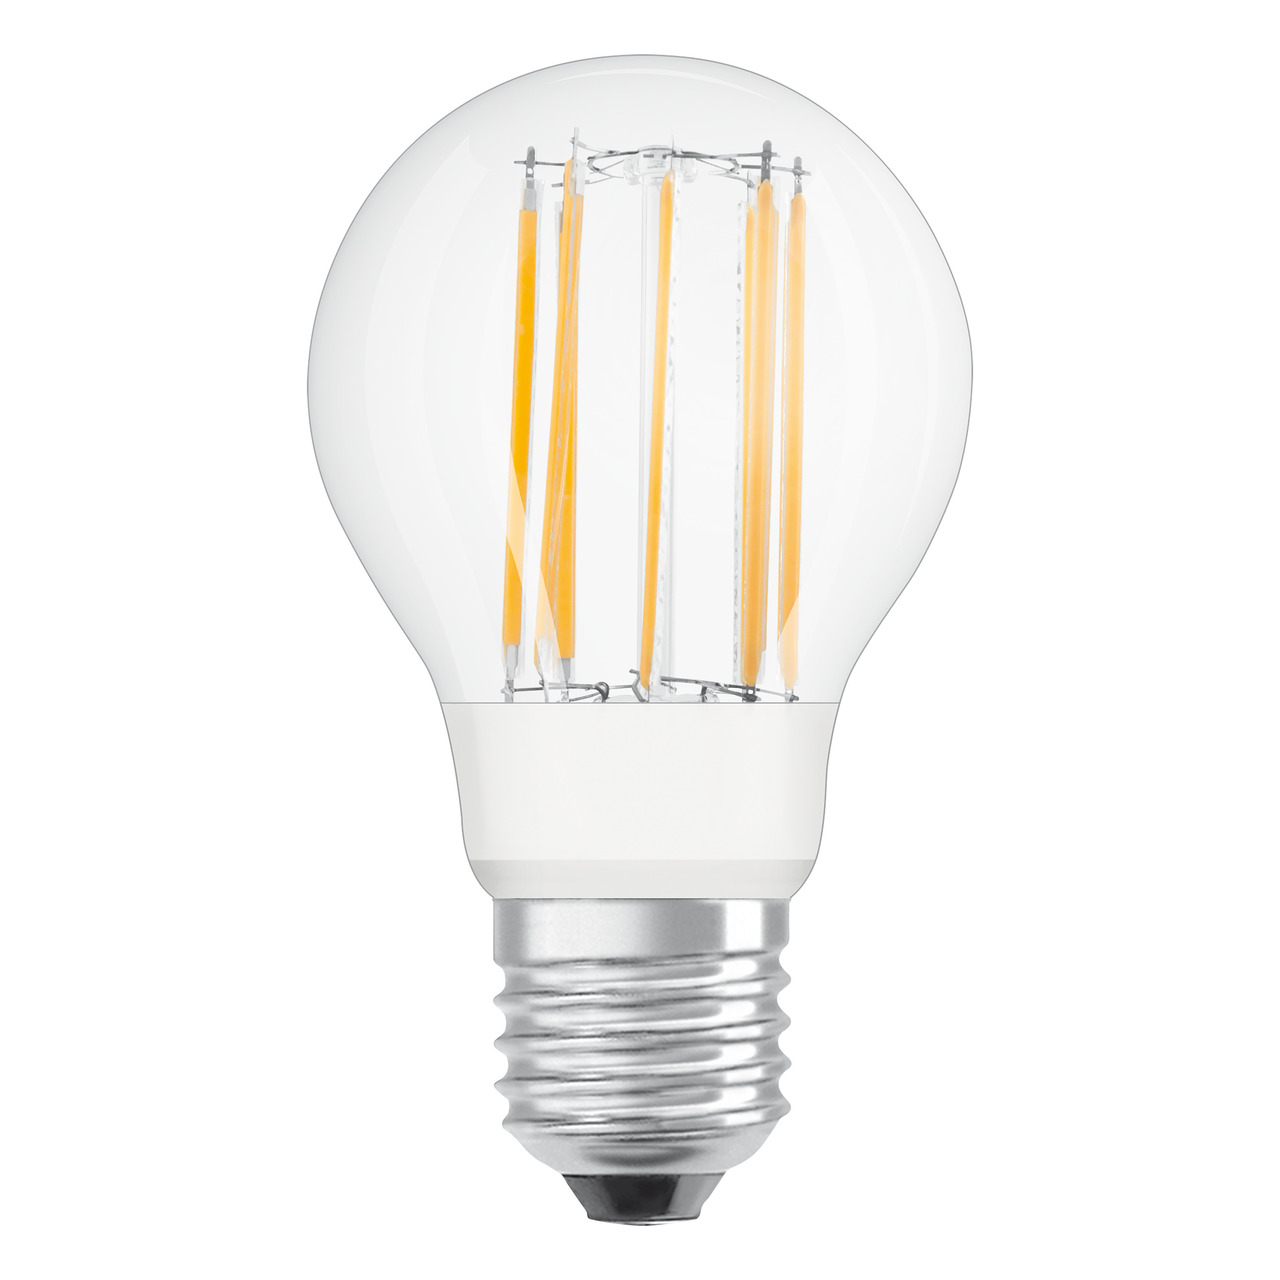 OSRAM LED Superstar 12-W-Filament-LED-Lampe E27- warmweiss- klar- dimmbar- 1521 lm